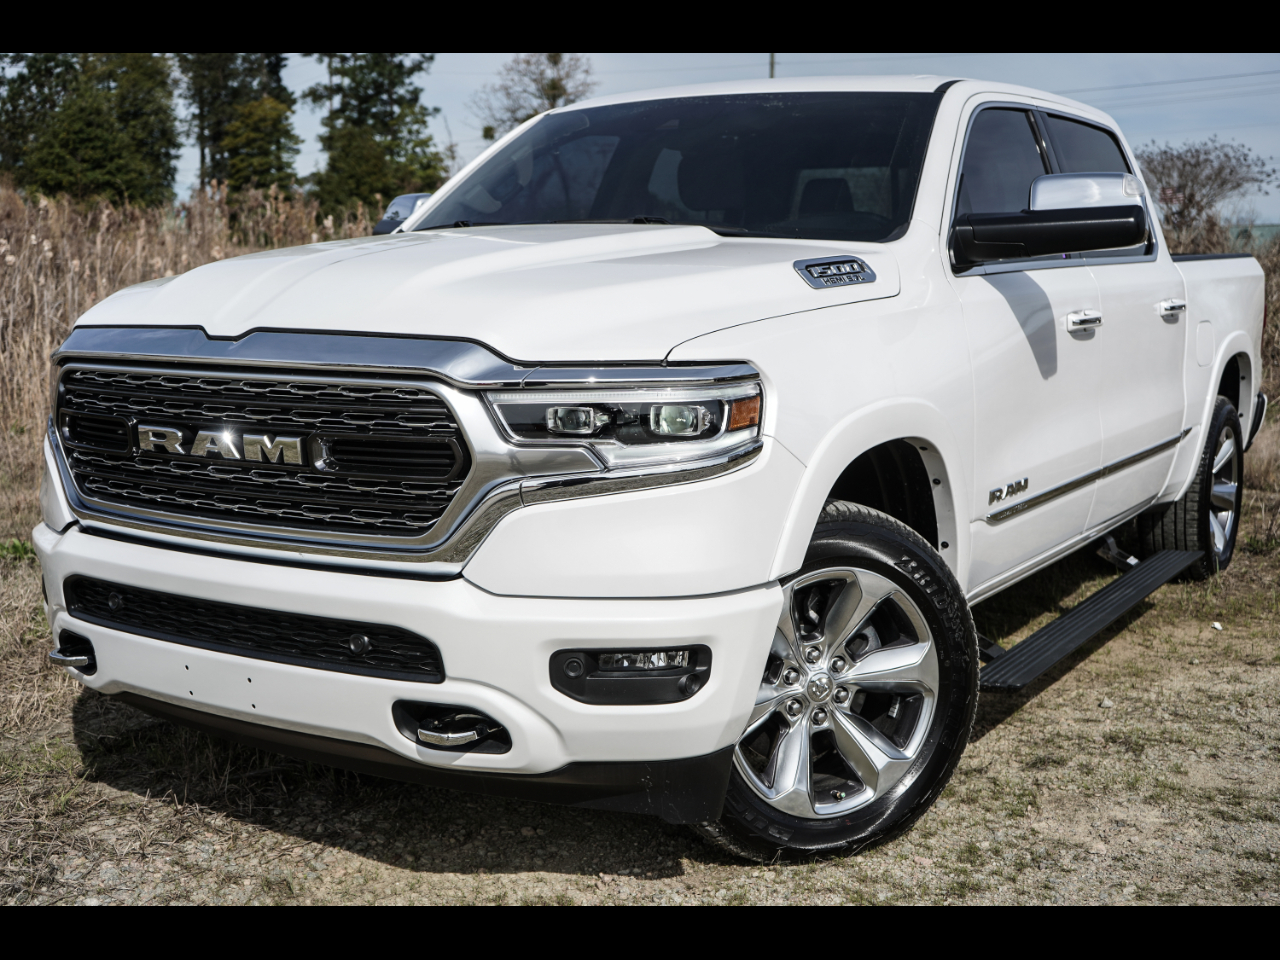 2019 RAM 1500 Limited 4x4 Crew Cab Loaded